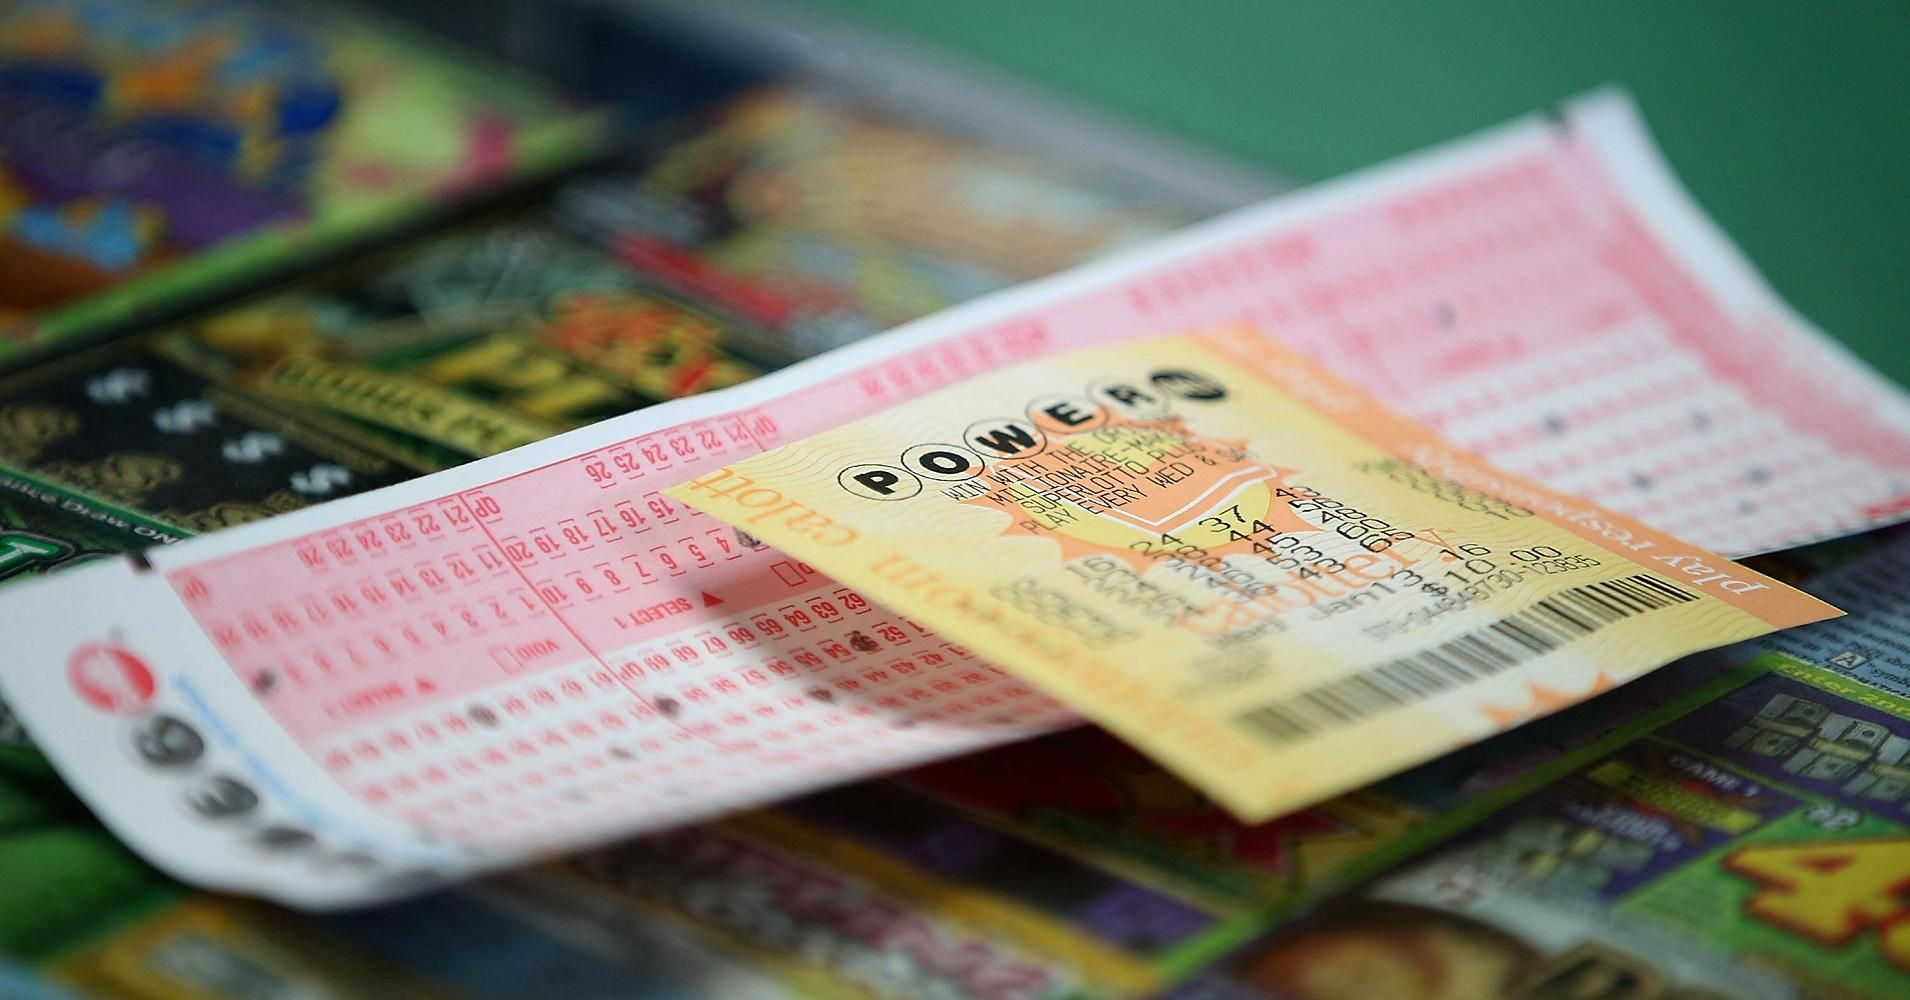 Would-be lottery winners could make an expensive mistake